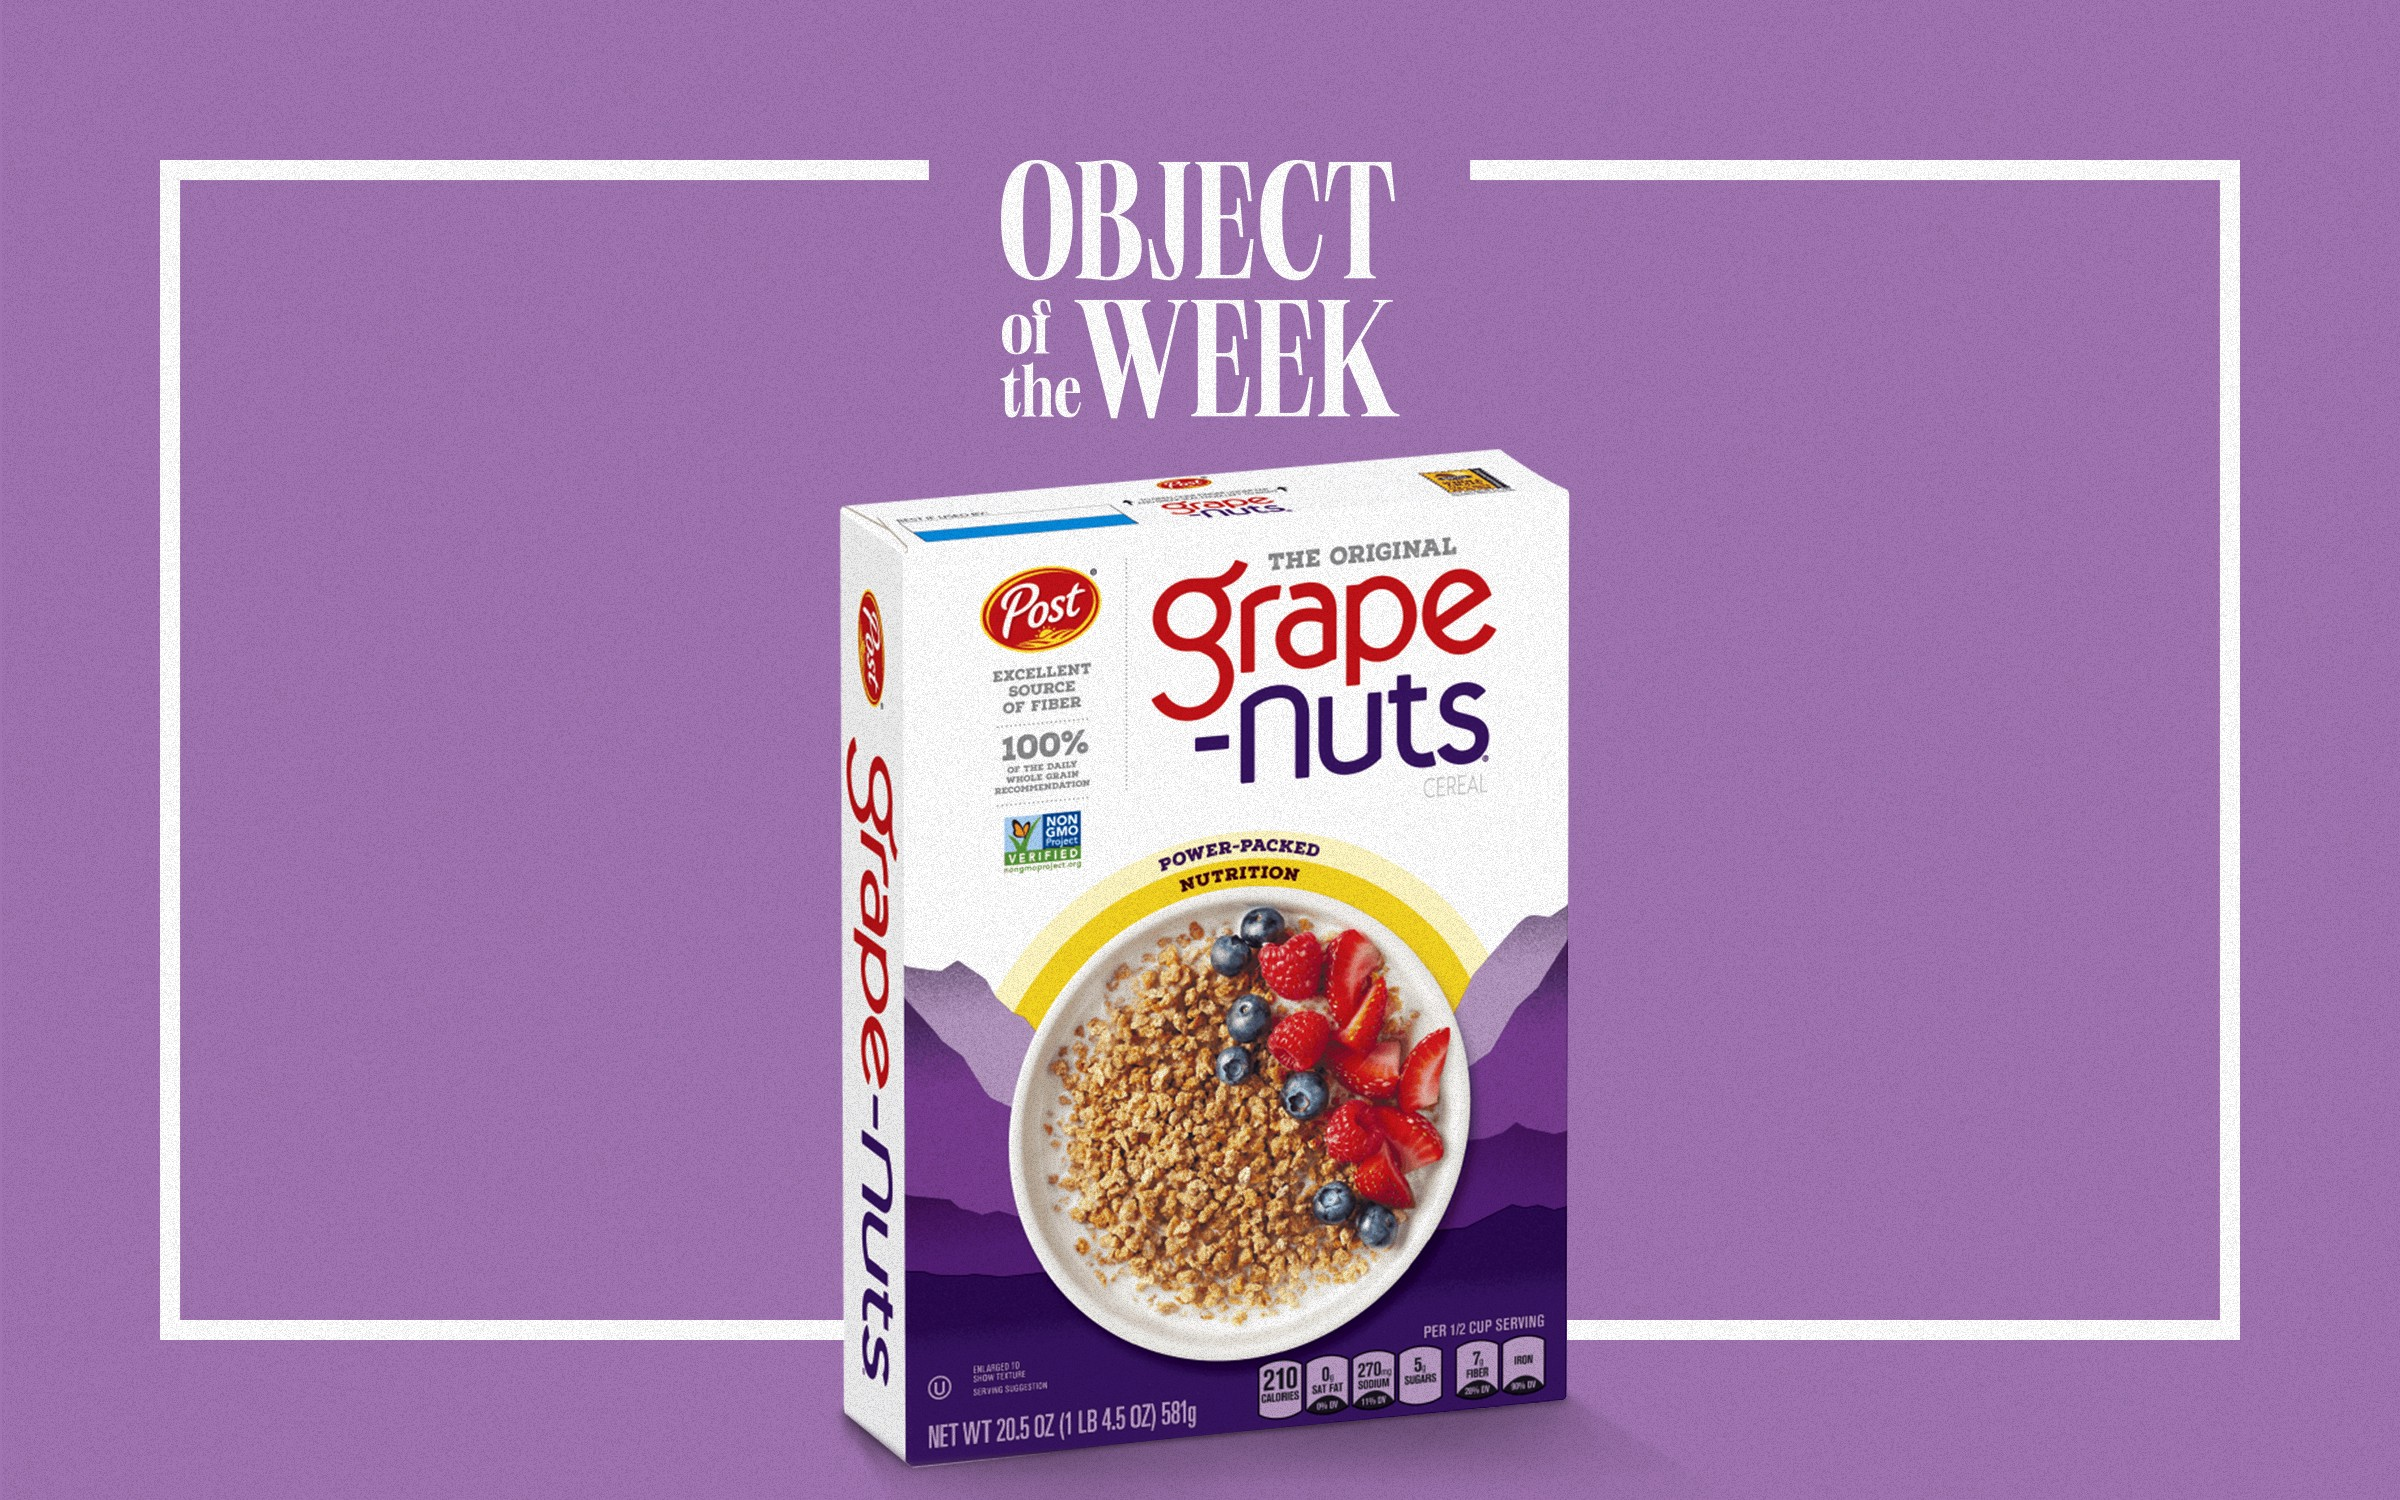 """A Grape-Nuts cereal box photoshopped onto a purple background with the text """"Object of the Week"""" and a square frame surrounding the cereal box."""